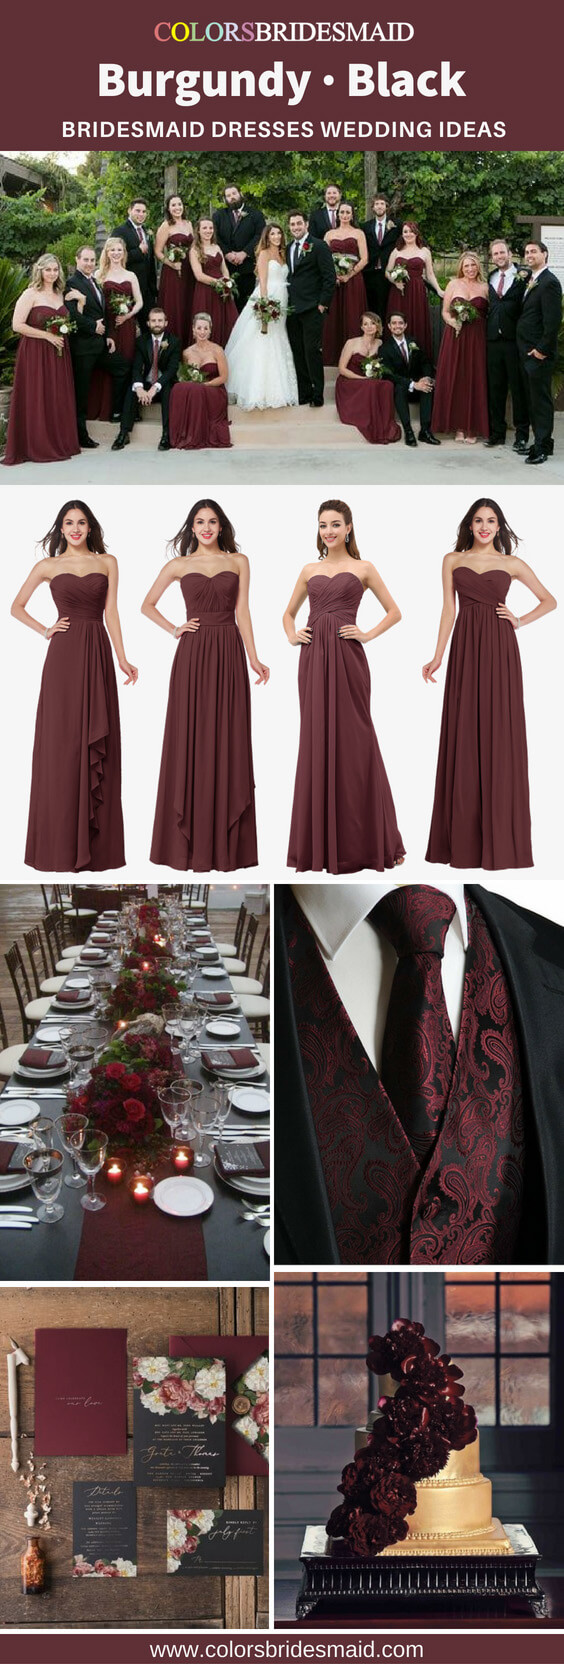 20 Best Burgundy Wedding Color Palettes Colorsbridesmaid,Summer Outdoor Wedding Summer Casual Wedding Dresses